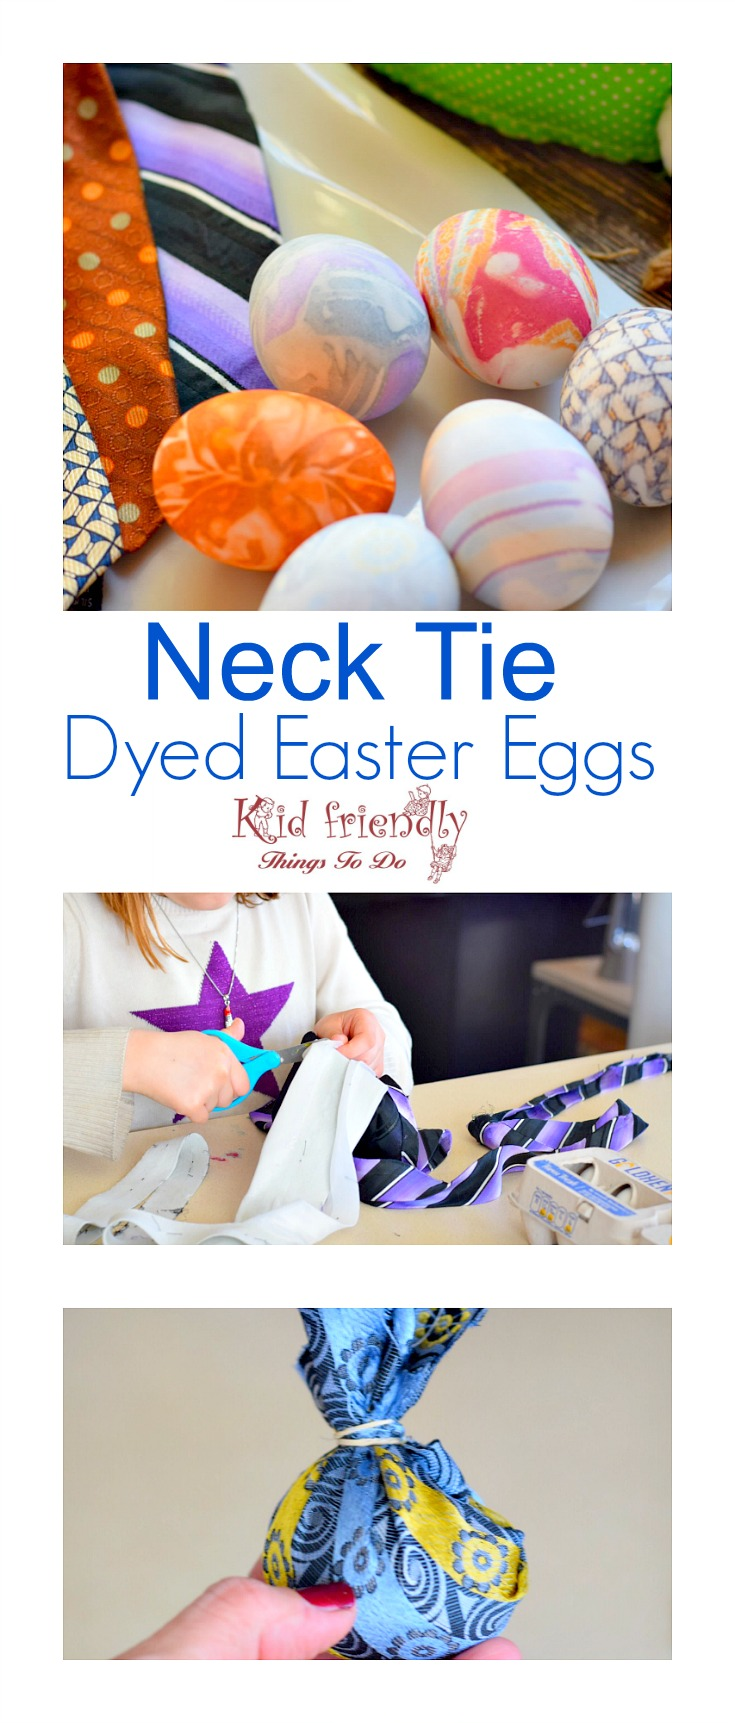 How to dye Easter Eggs with a Neck Tie. This is such a fun Easter craft to do with the kids! www.kidfriendlythingstodo.com